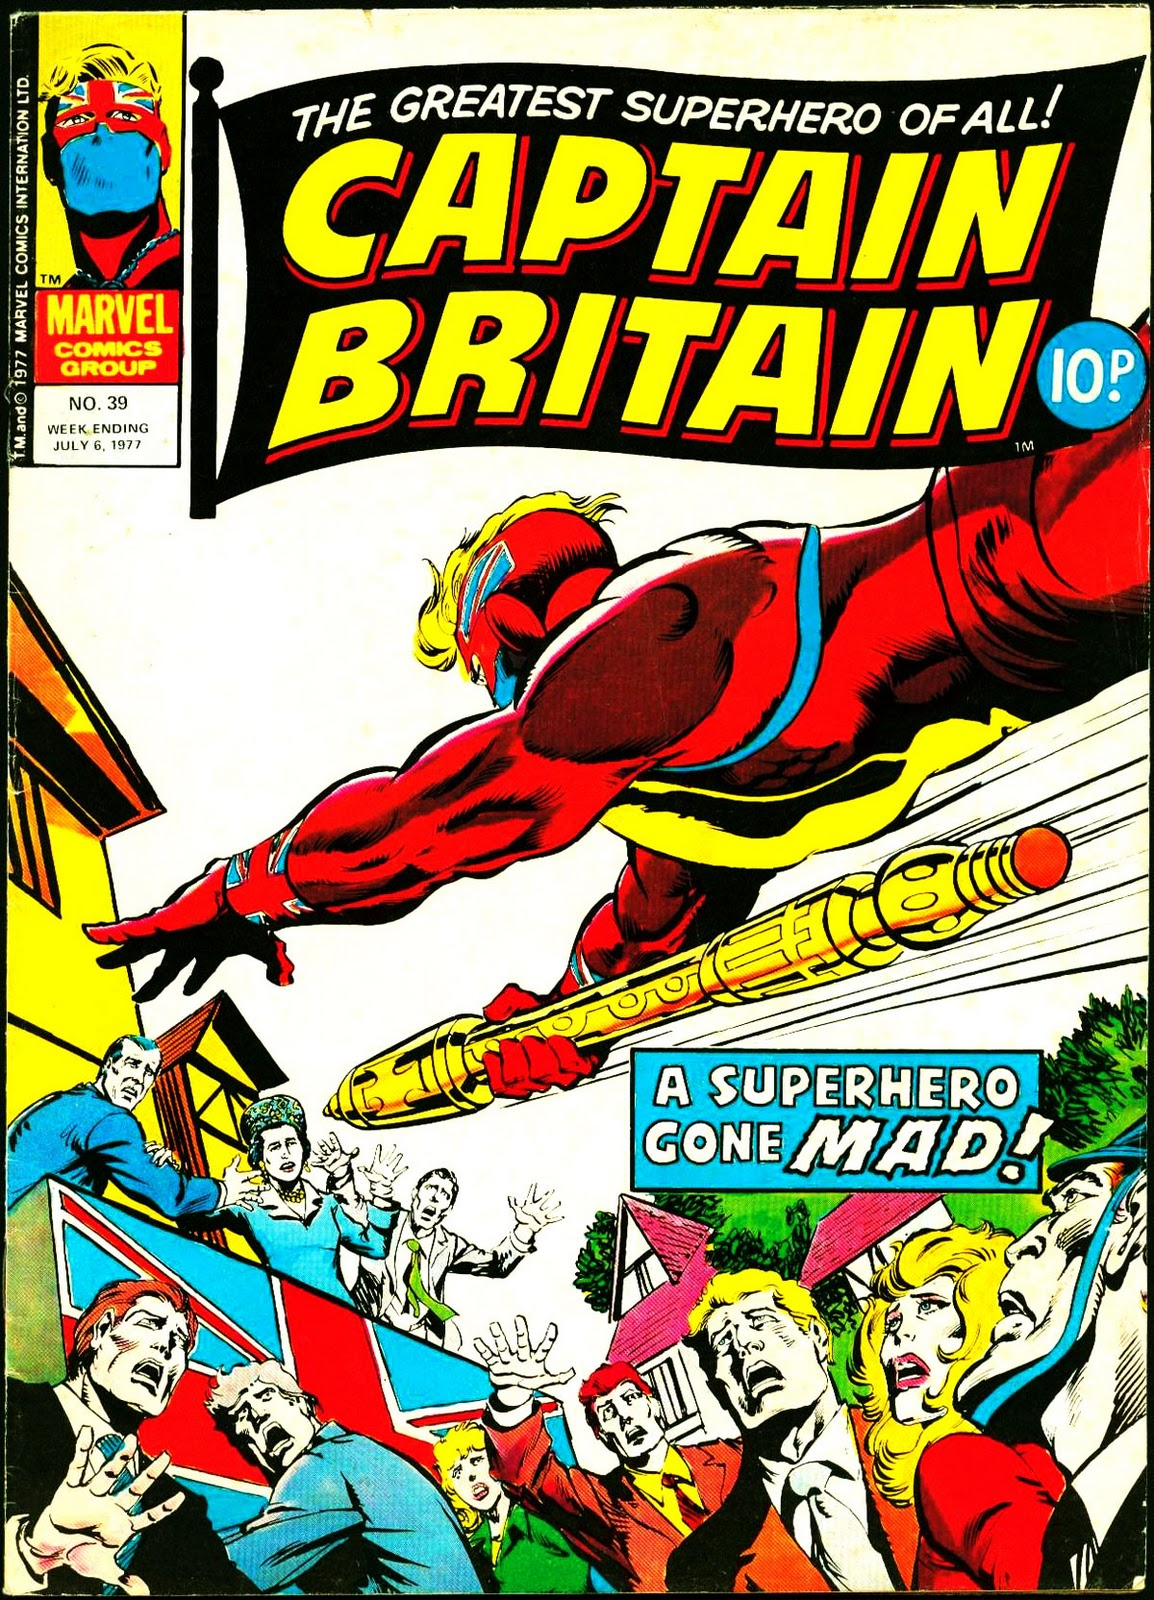 Captain Britain v1 39p1 Is The US Declaration Of Independence Legal? No, Says the British